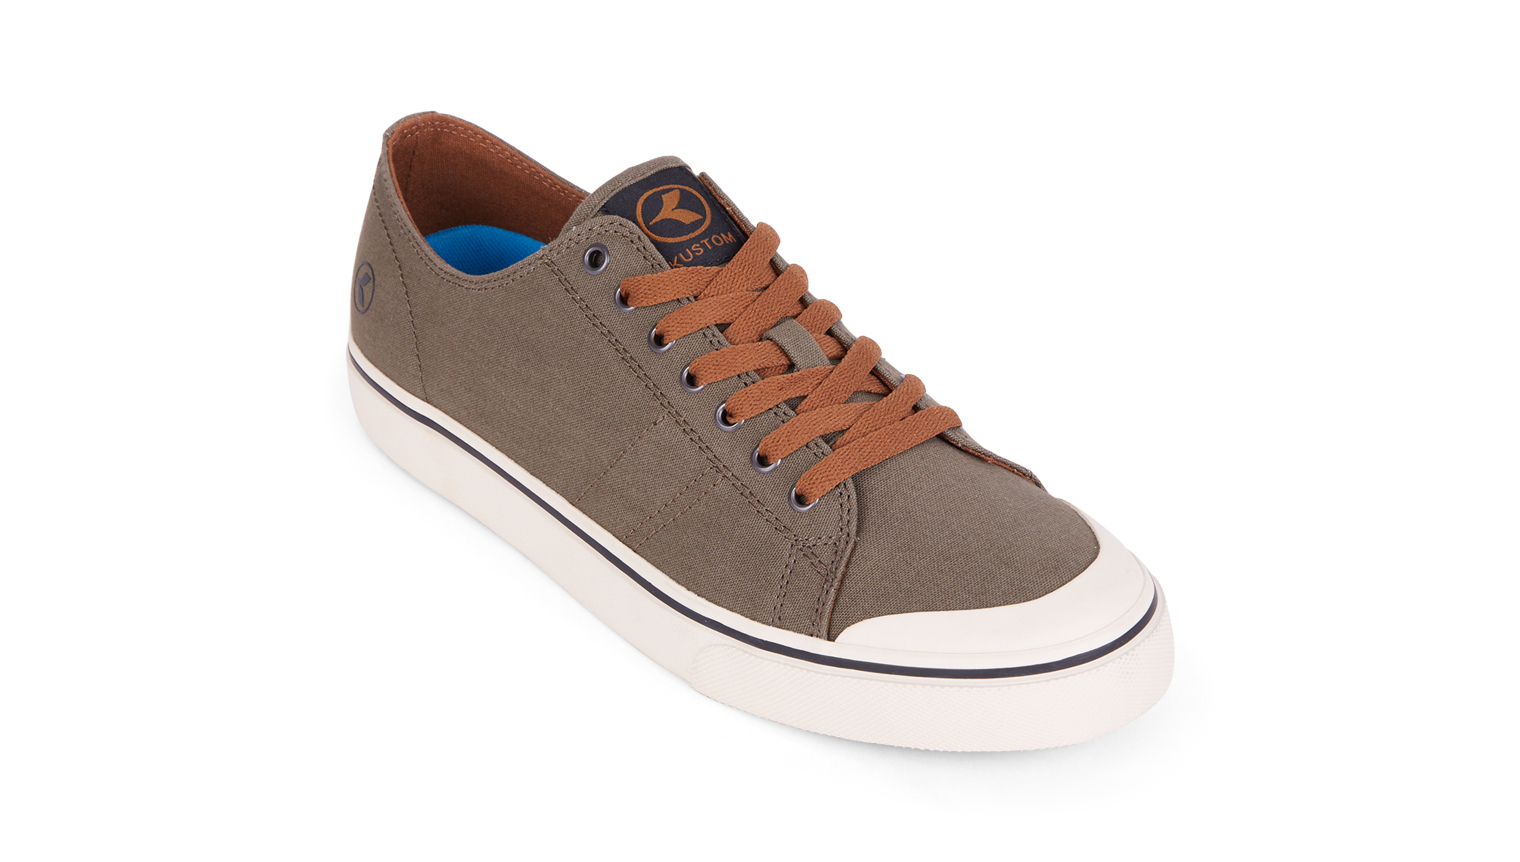 KUSTOM SHOES SLIM VULC SHOE / ARMY